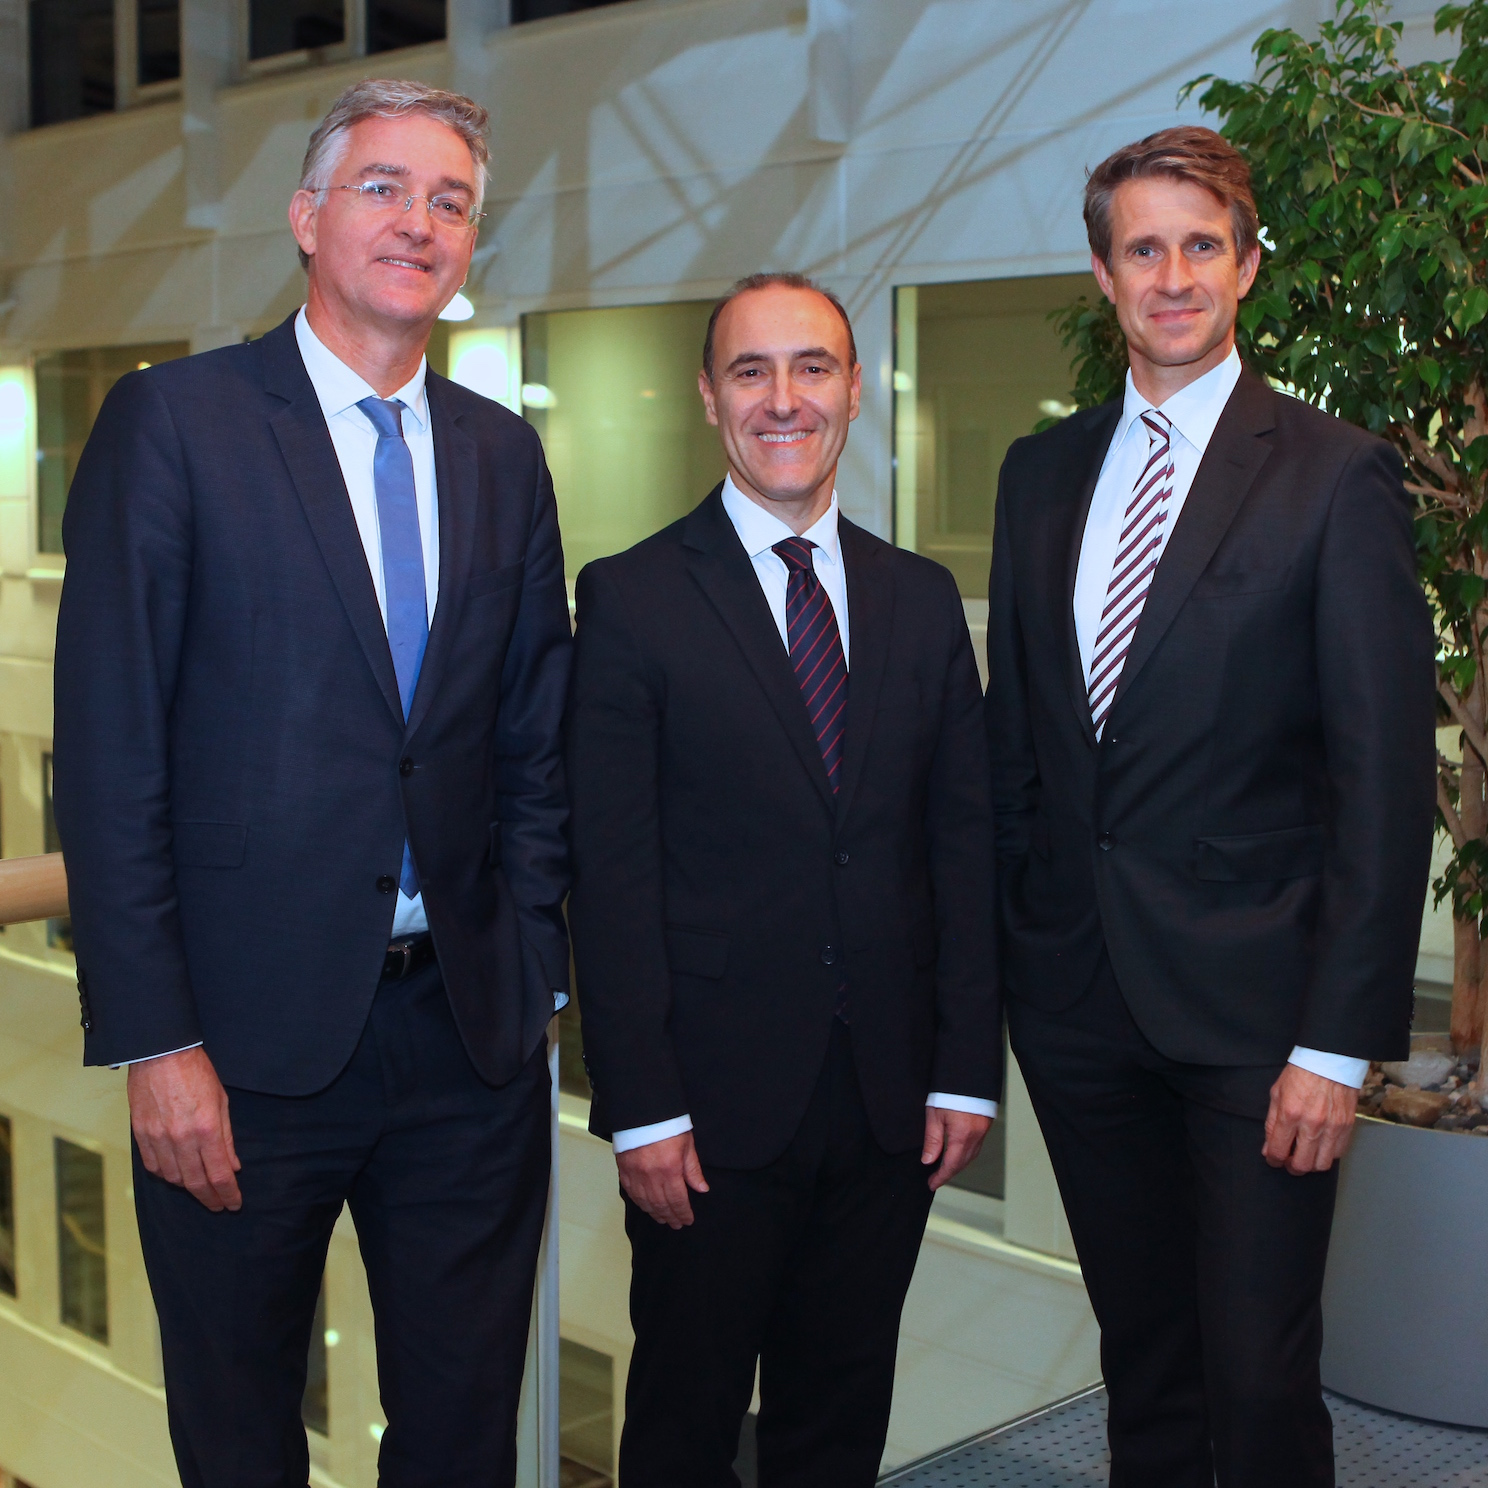 "From left to right: Lahmeyer CEO Martin Seeger, Prof. Dr. Adriano Freire from the EGOS Institute Lisbon and Stefan Quandt, Deputy Executive Board Chairman of the ""Hessischer Kreis"", together at the presentation event at Lahmeyer."